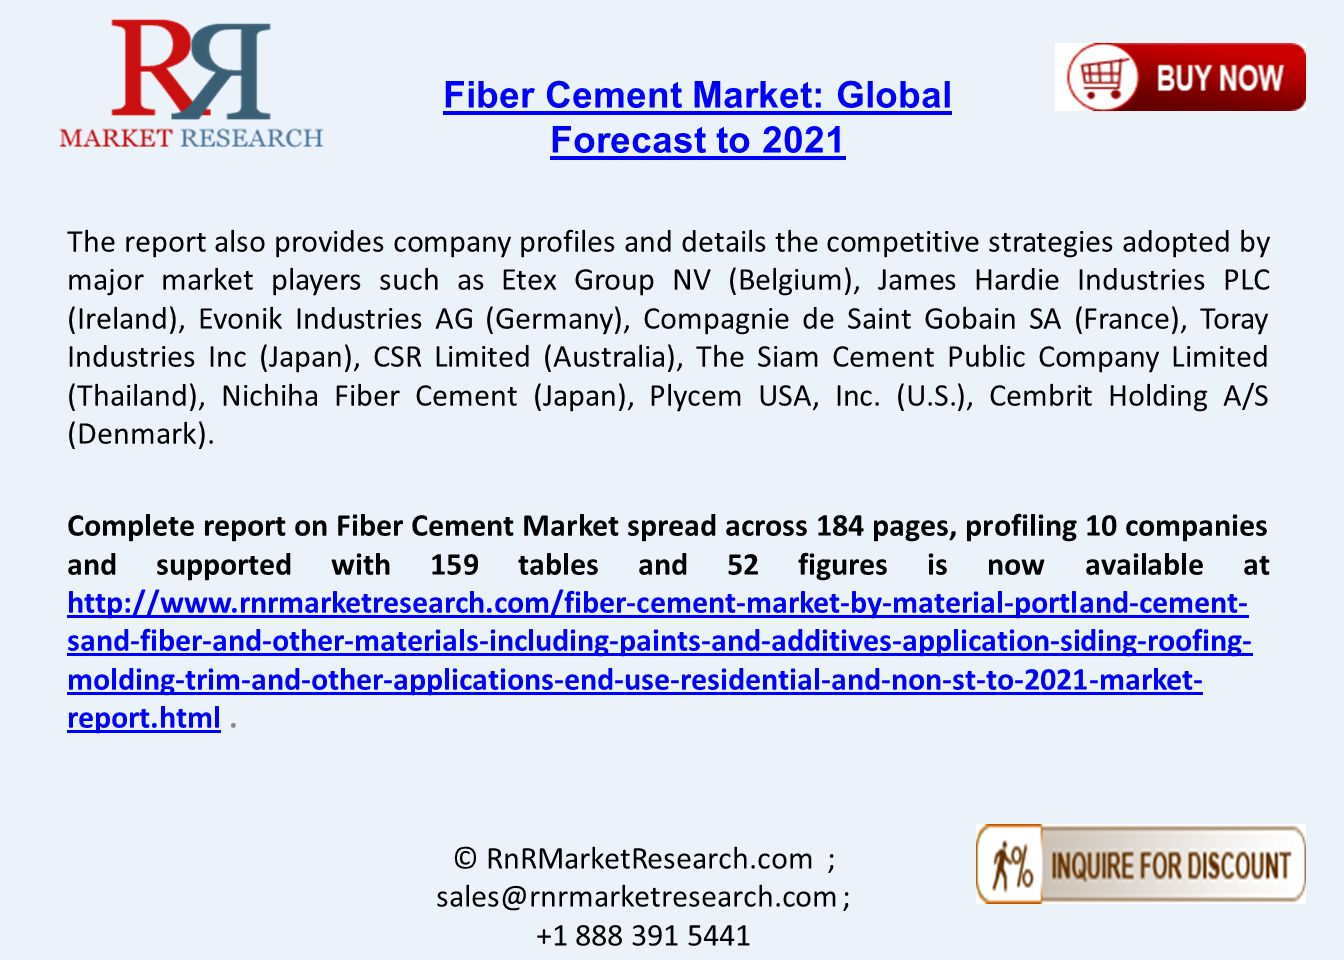 Fiber Cement Market Drive due to Growth in Construction